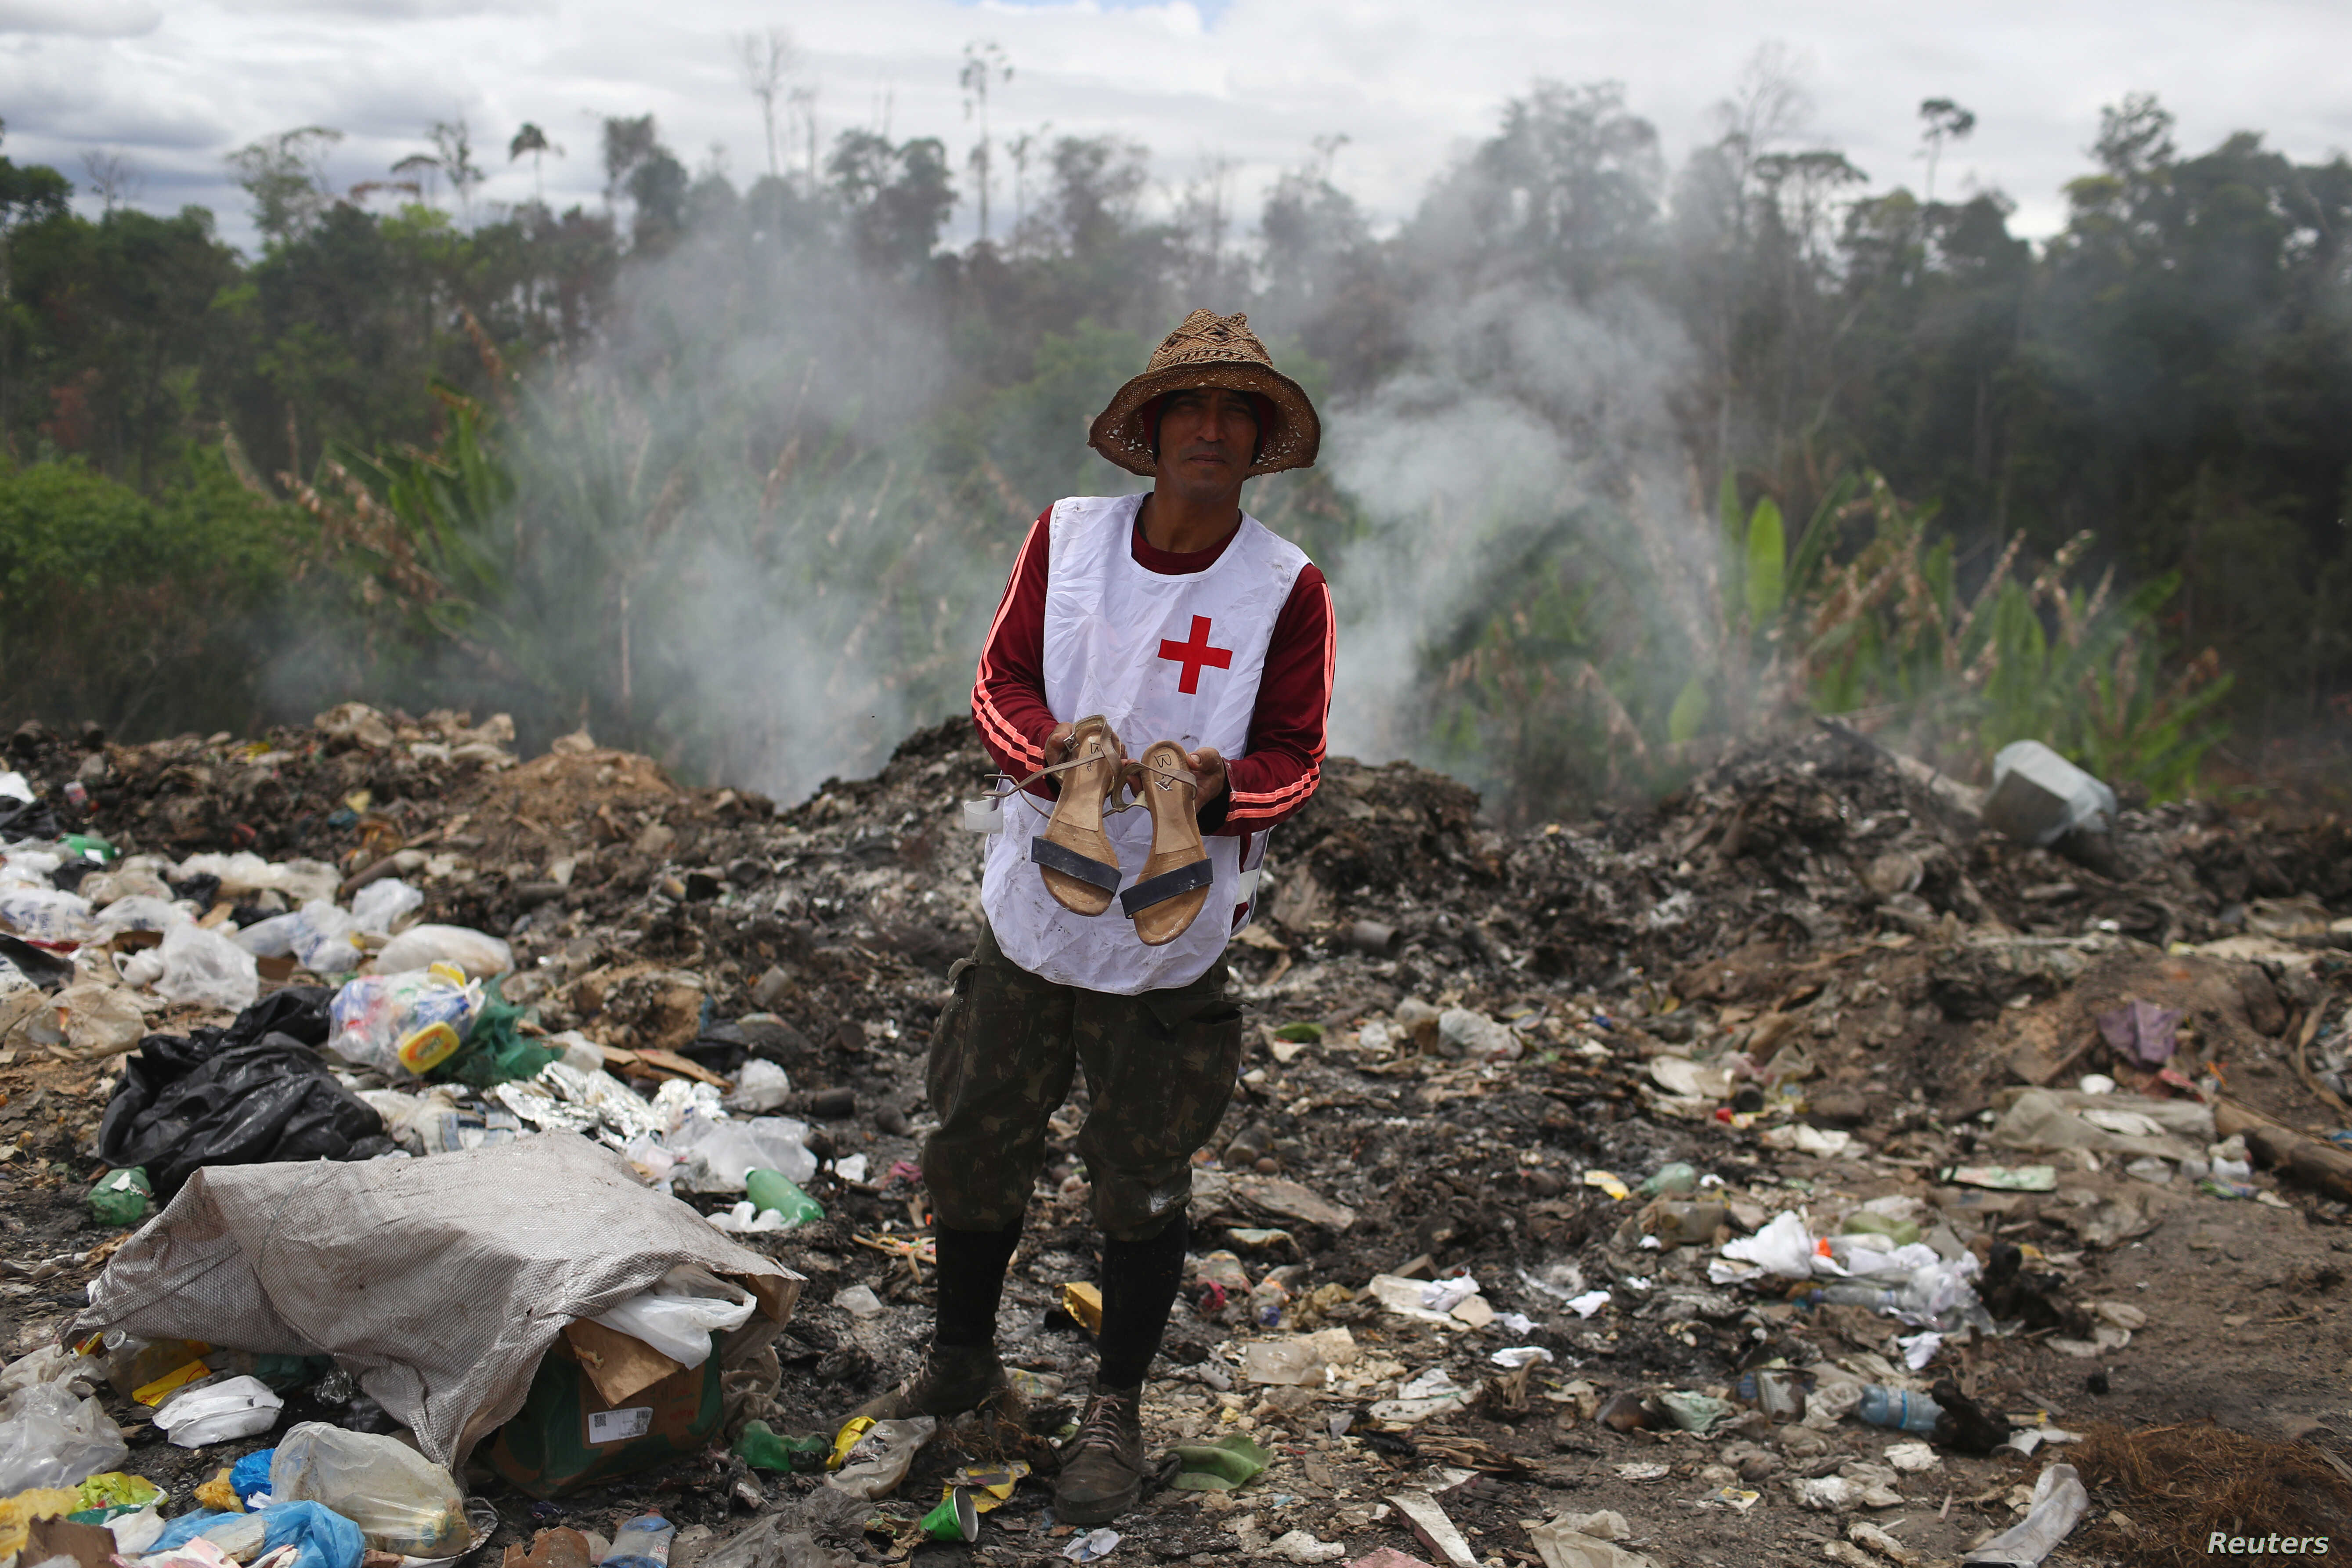 Venezuelan Charles Sanchez holds a pair of shoes after scraping on a garbage dump in the border city of Pacaraima, Brazil, April 15, 2019.